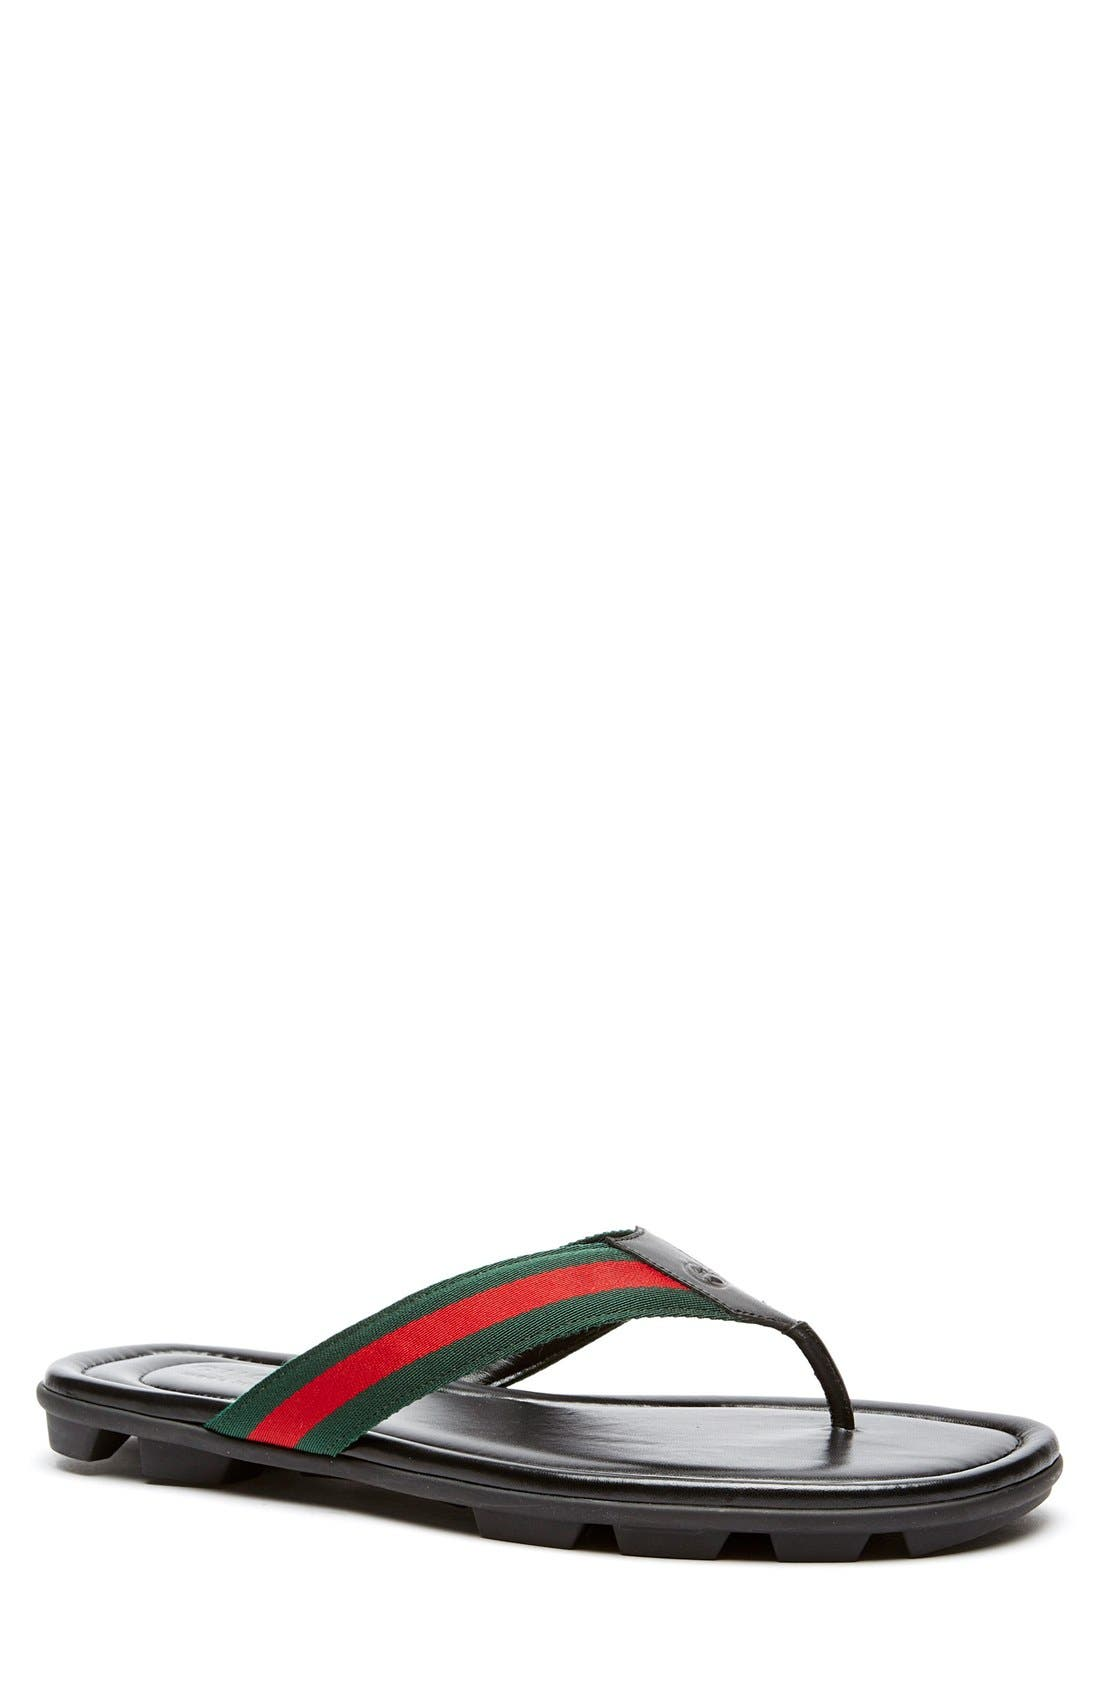 bbb671c8c16a Good deal Gucci Titan Flip Flop (Men) store